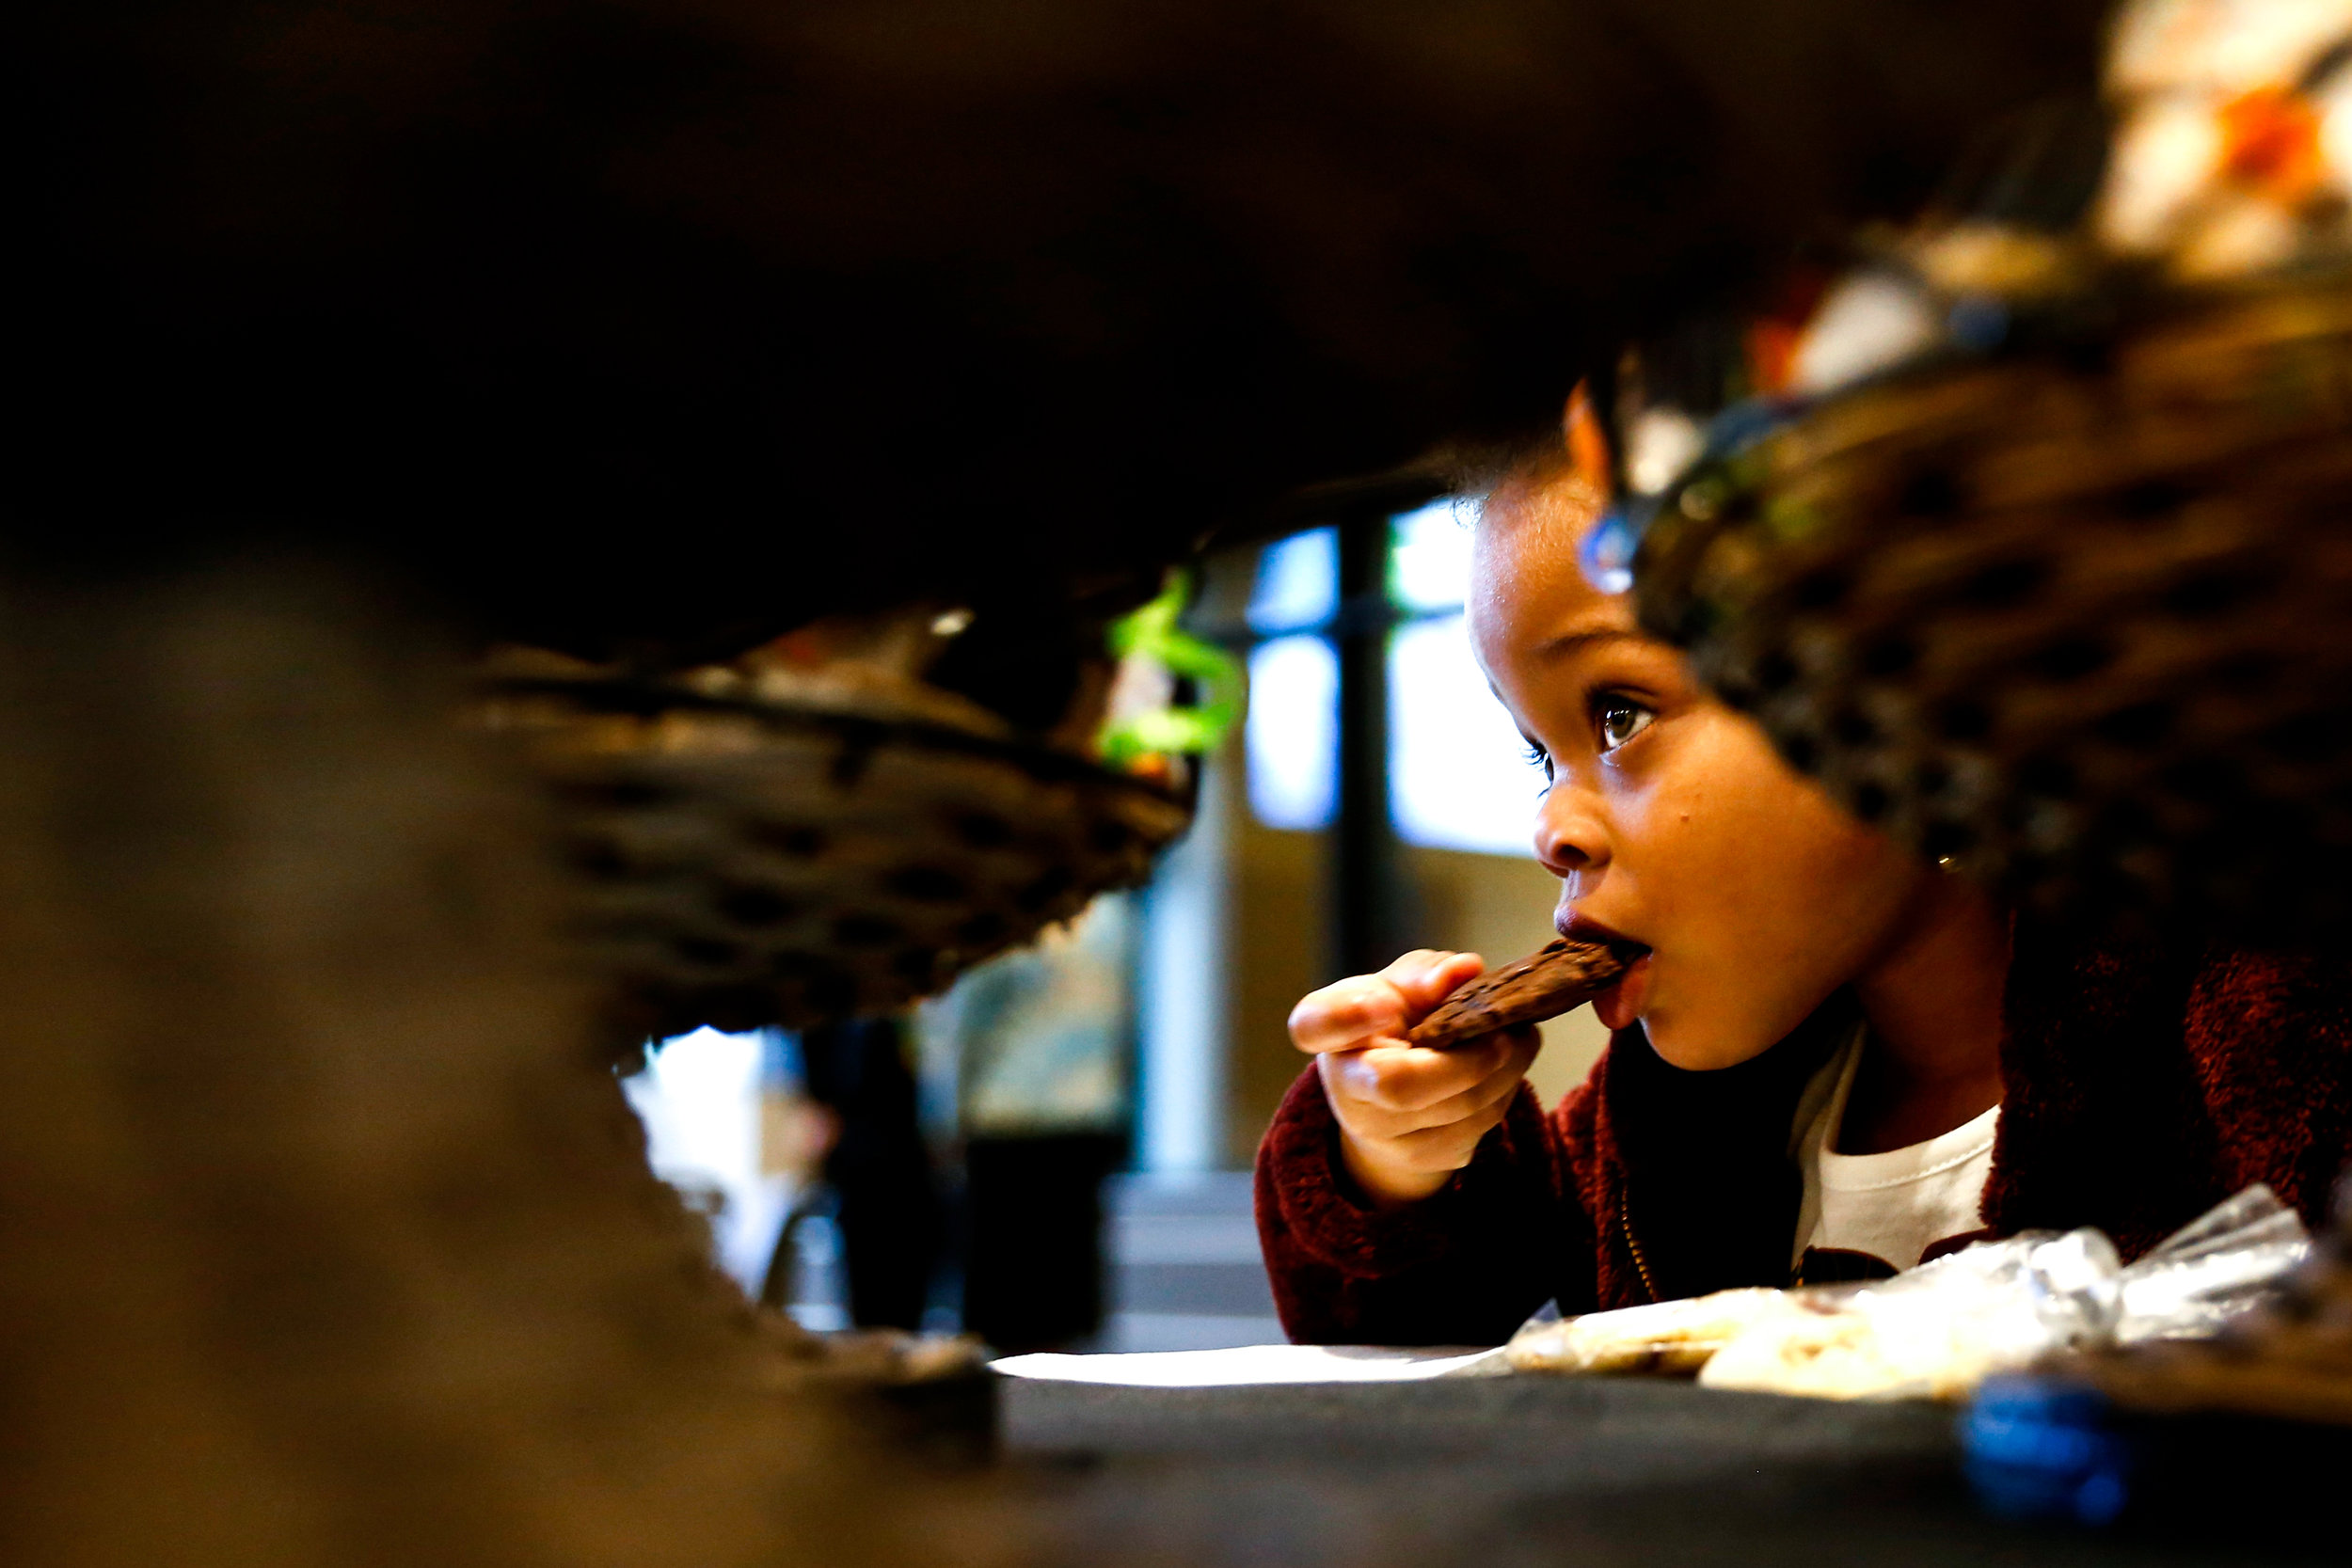 Armani Searcy, 4, of Flint, enjoys a cookie while attending the ribbon cutting ceremony of a completed construction project at the Genesee Career Institute with her father Derrick Searcy on Wednesday, Oct. 26, 2016 in Mundy Township. The event offered an opportunity for those in attendance to tour the facility and learn about different programs for students.